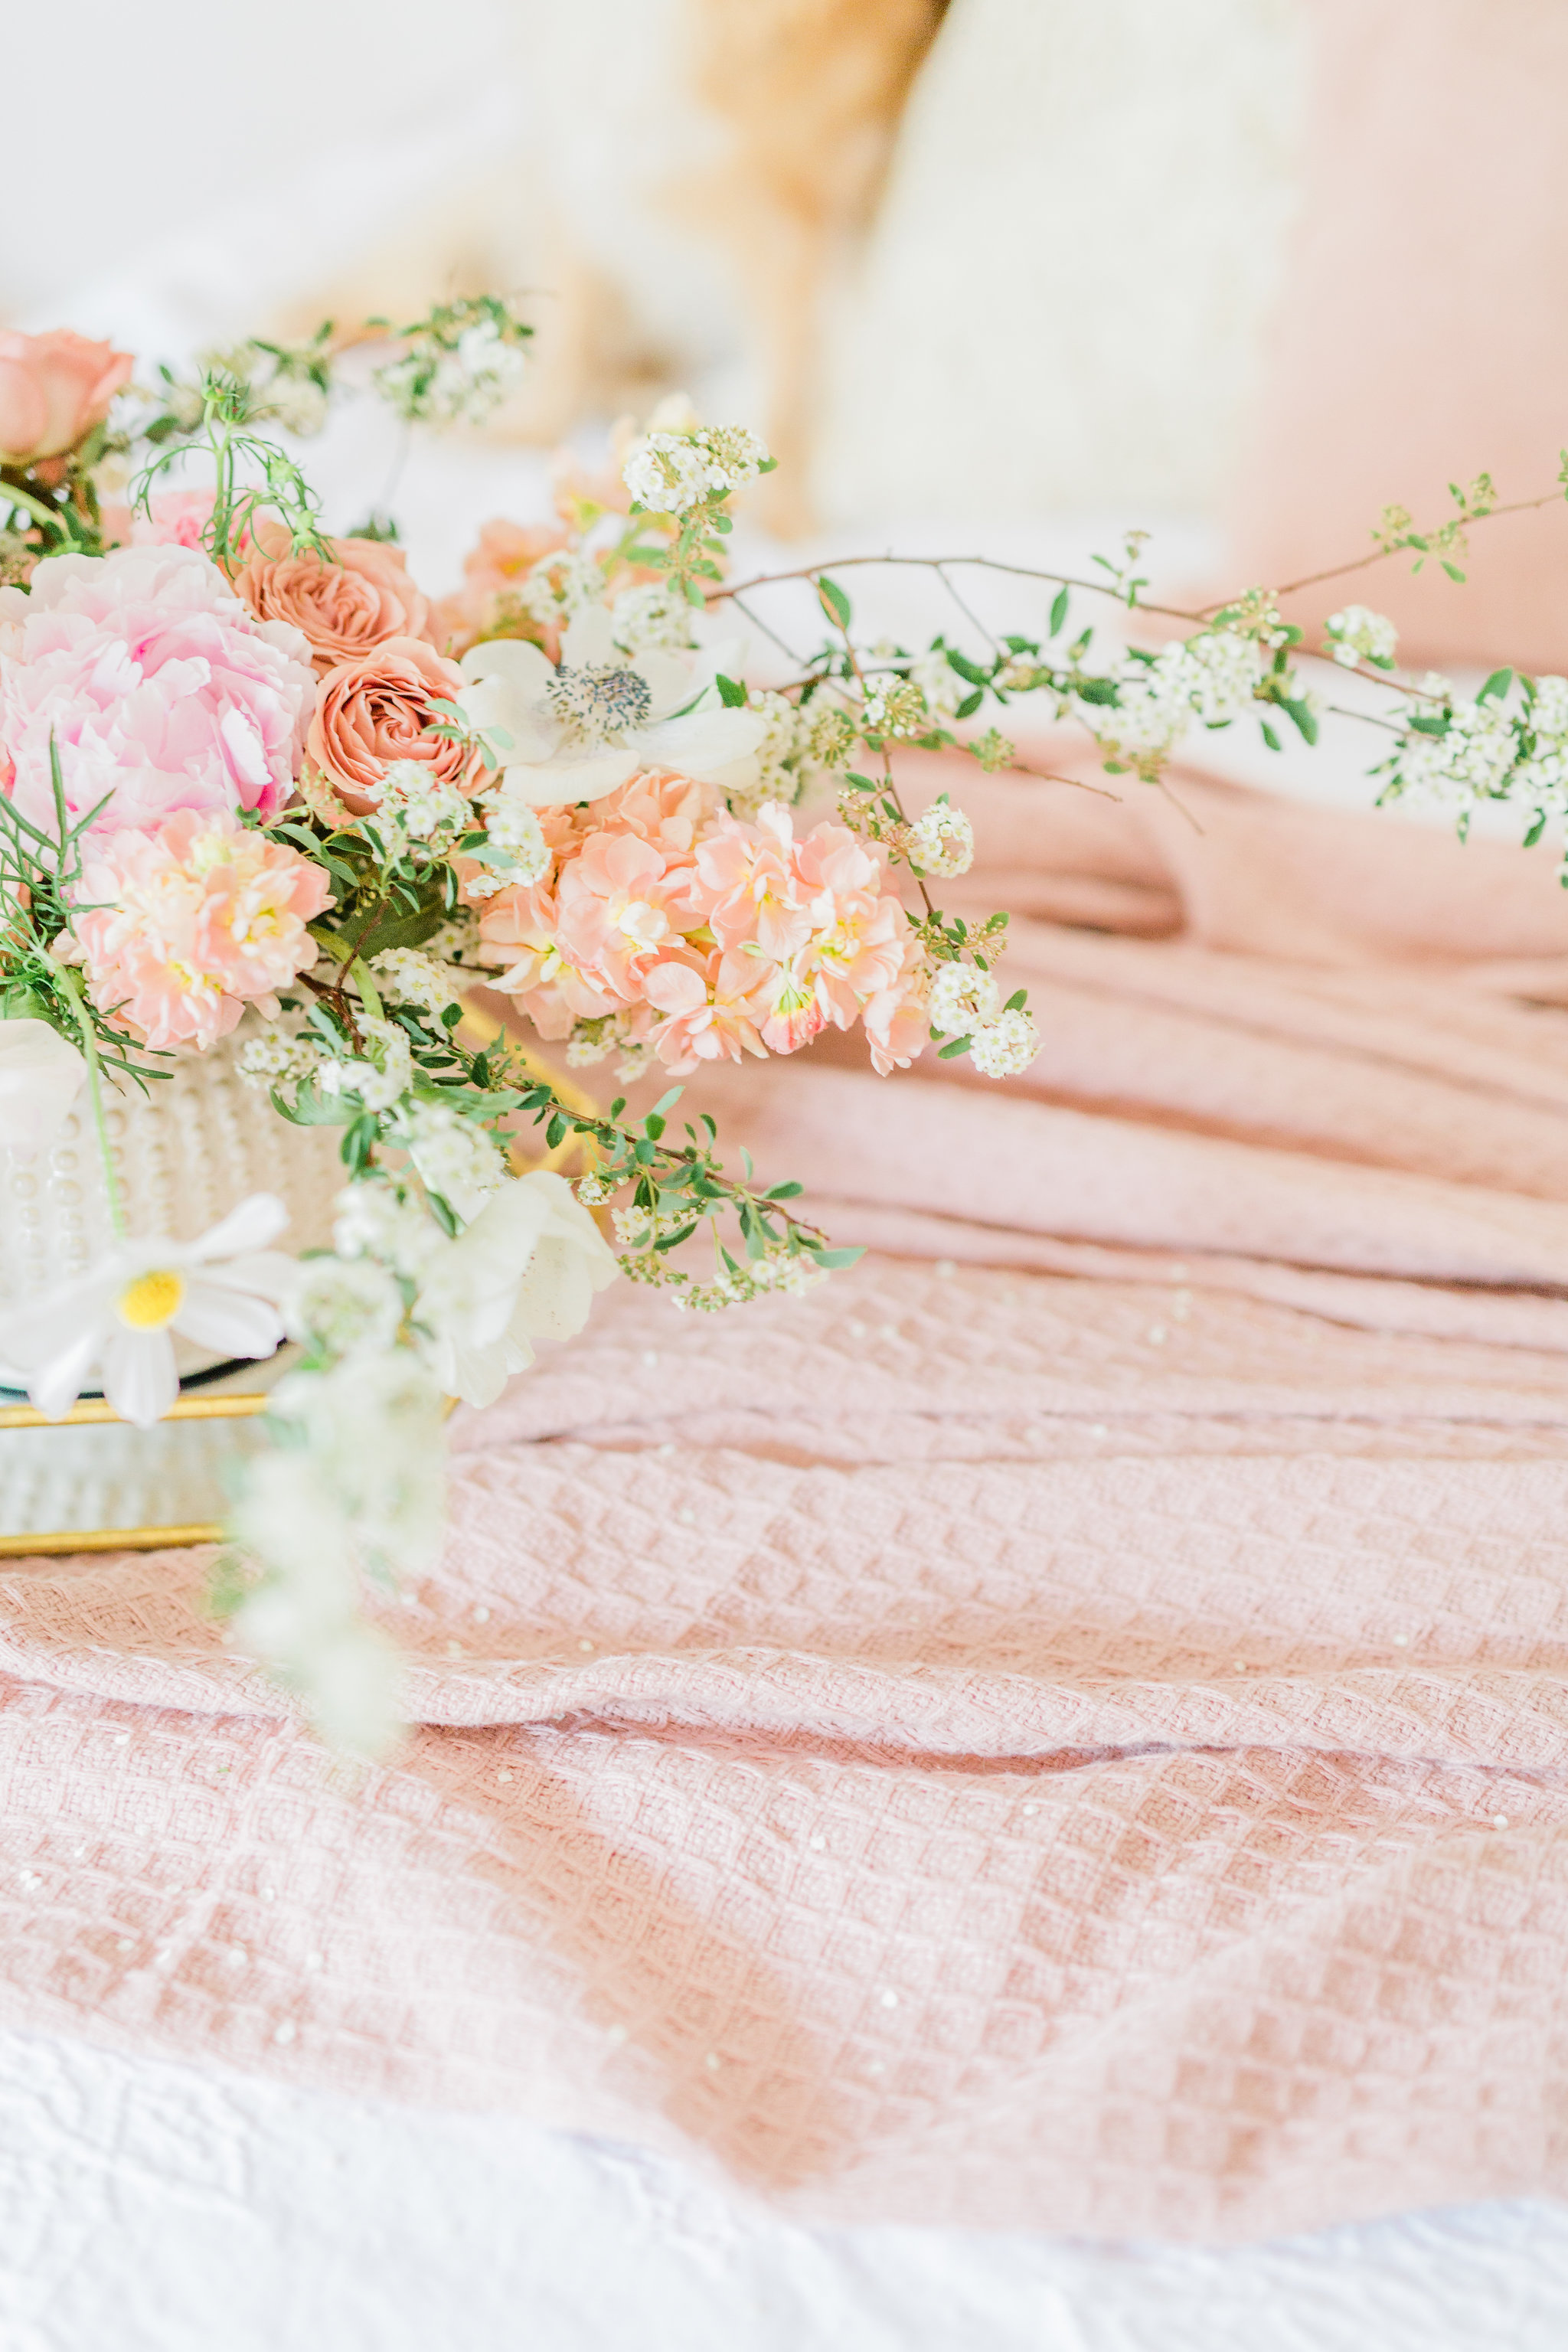 Neutral Blush and White Spring Master Bedroom Makeover, How to make/dress a bed in 3 steps Blush organic Cotton throw